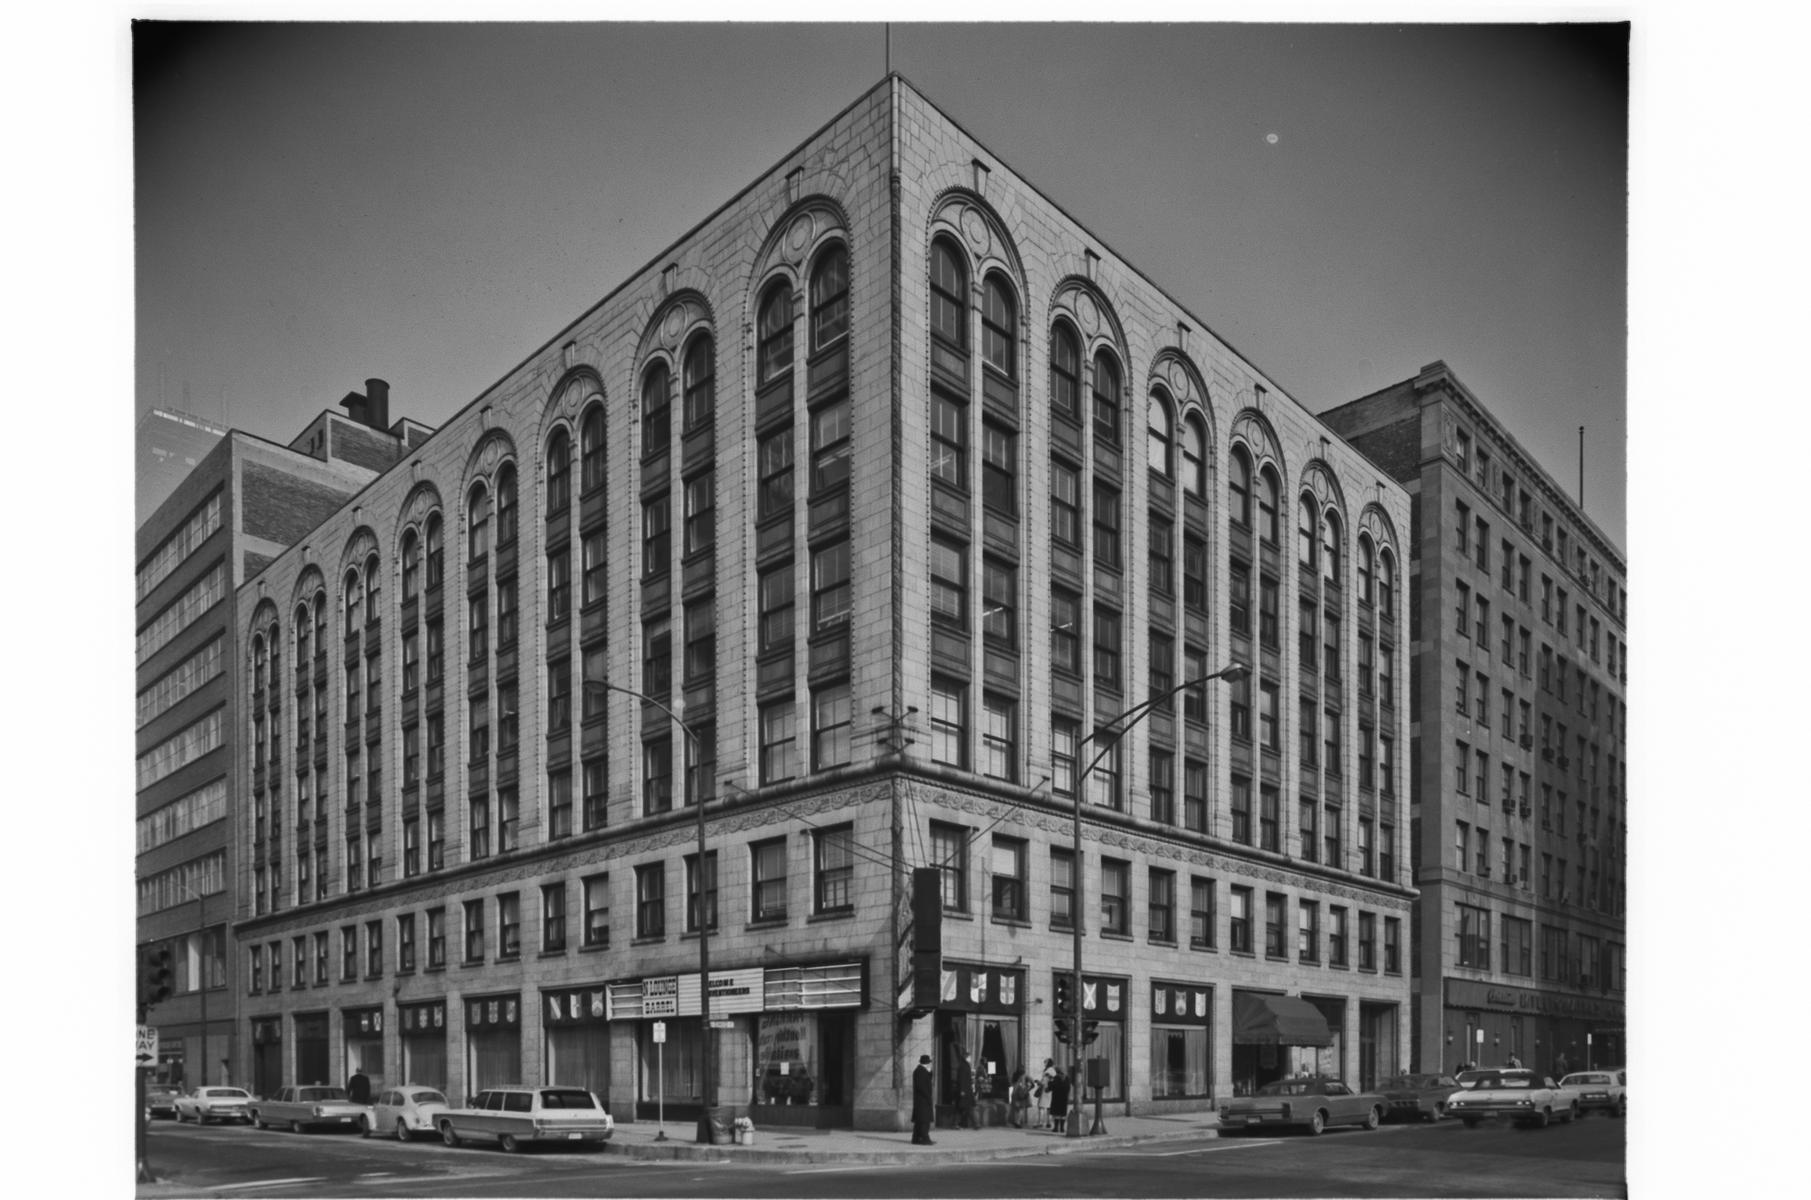 100 East Ohio Street (Ohio Street and Rush Street)